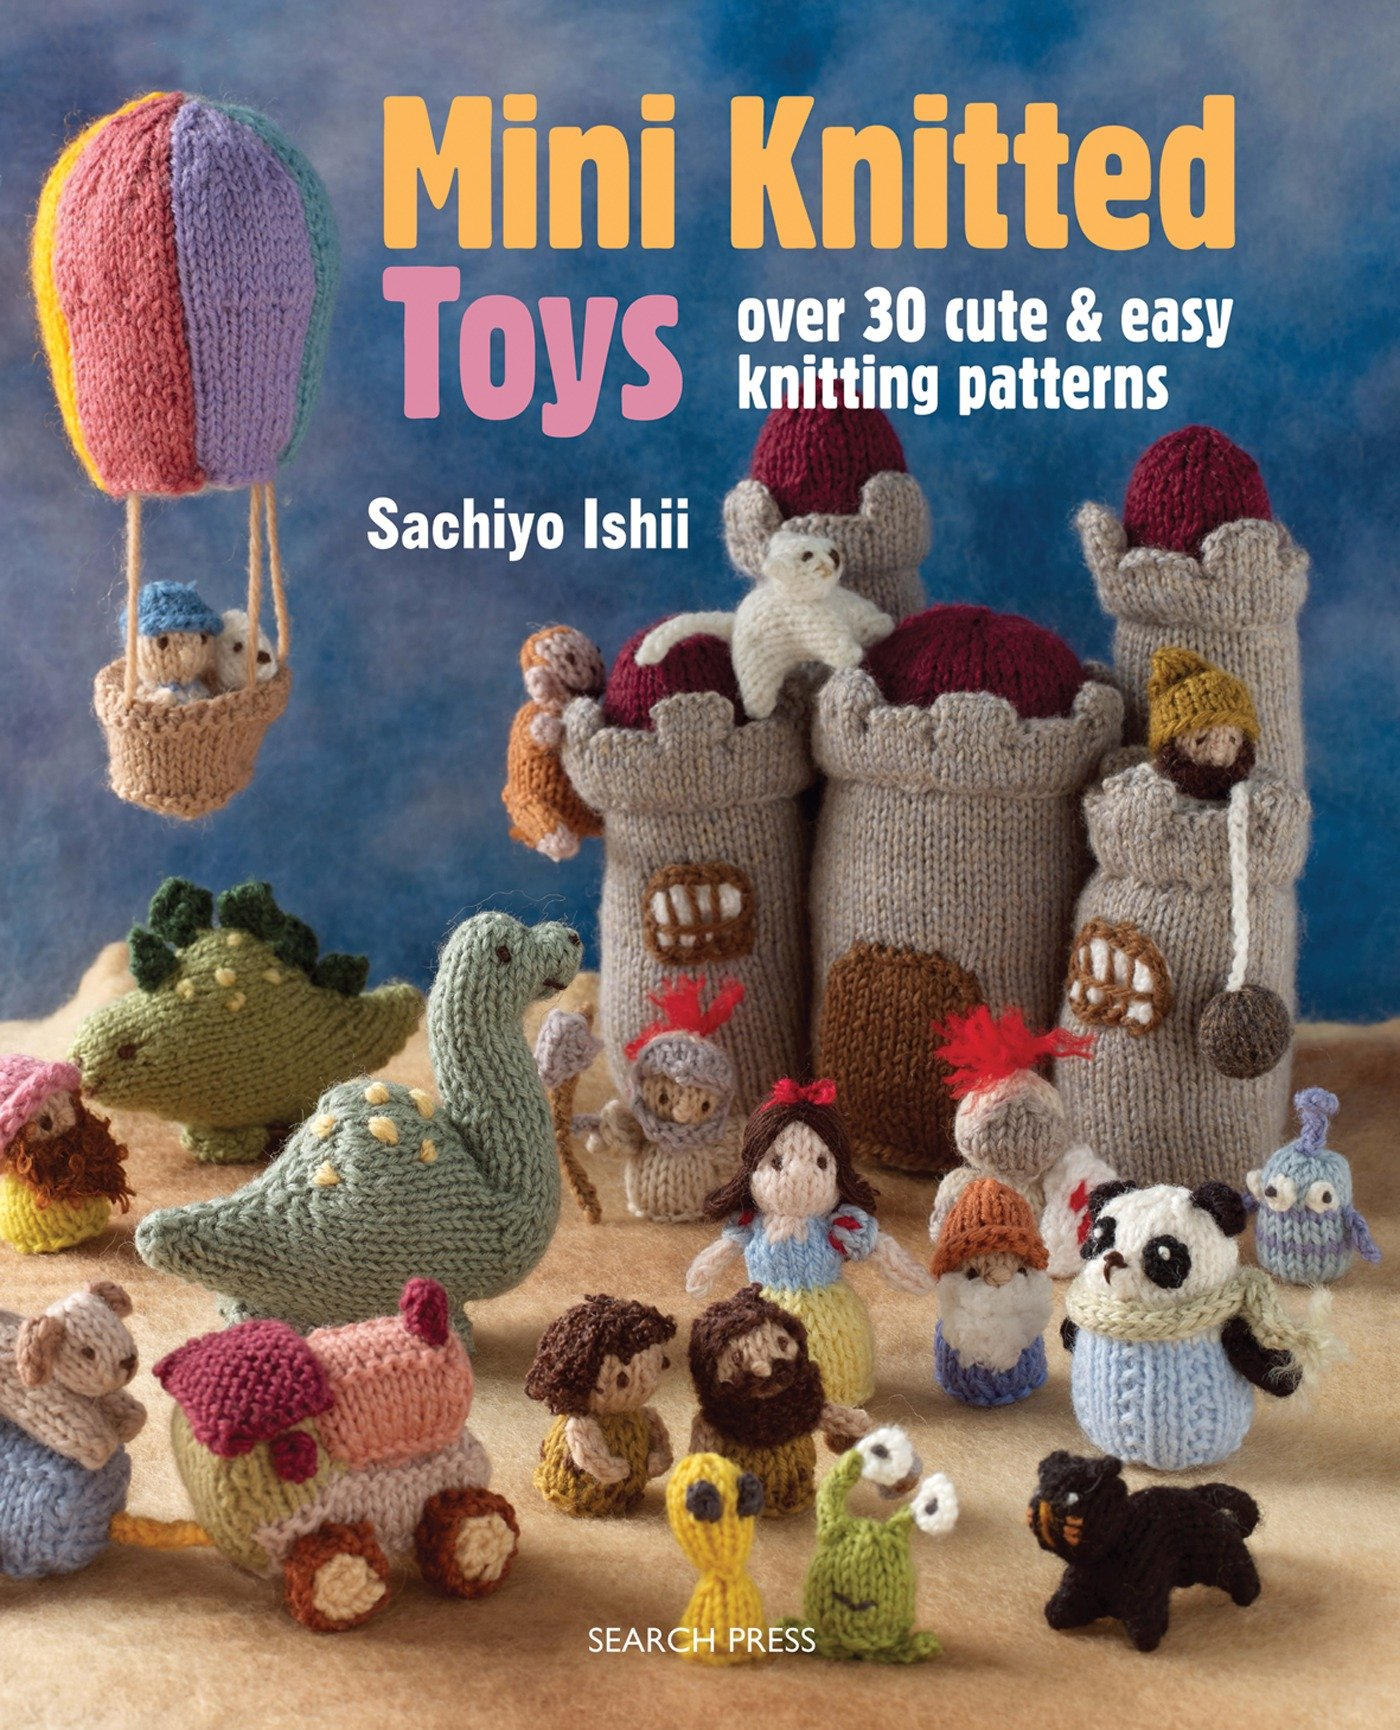 mini knitted toys: over 30 cute u0026 easy knitting patterns: sachiyo ishii: jedpowb